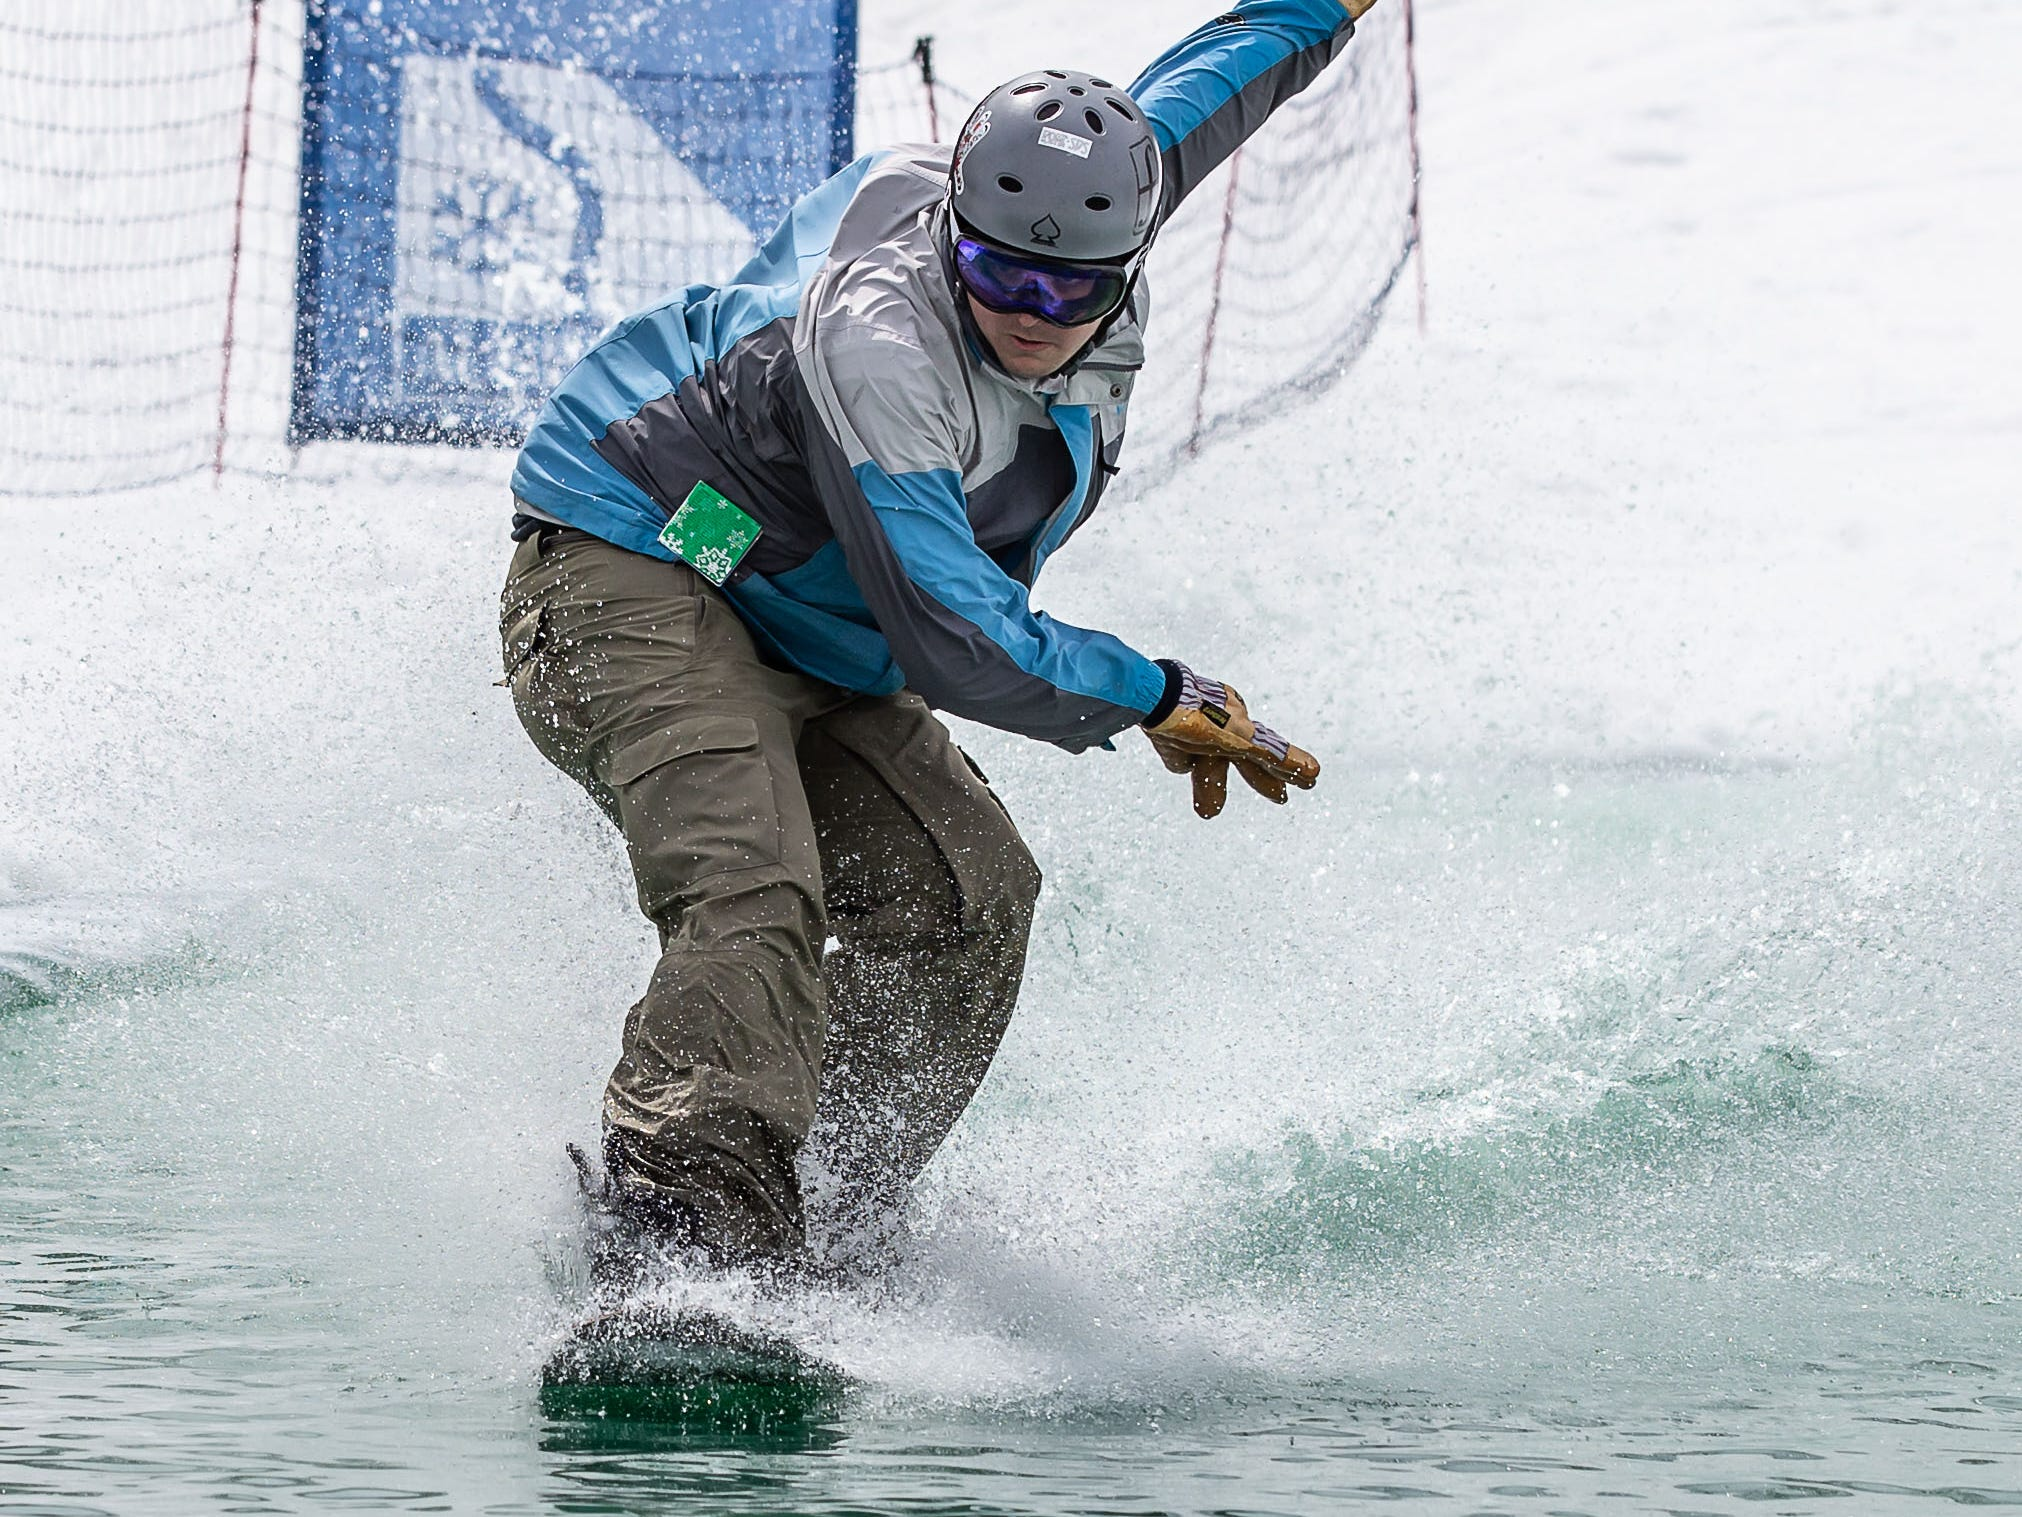 Lucas Healy of Carpentersville, IL hangs ten on his snowboard during the 2nd annual Pond Skim at Ausblick Ski Hill in Sussex on Saturday, April 6, 2019. The pond skim is held on the last day of the season as club members celebrate another fun-filled year on the slopes.